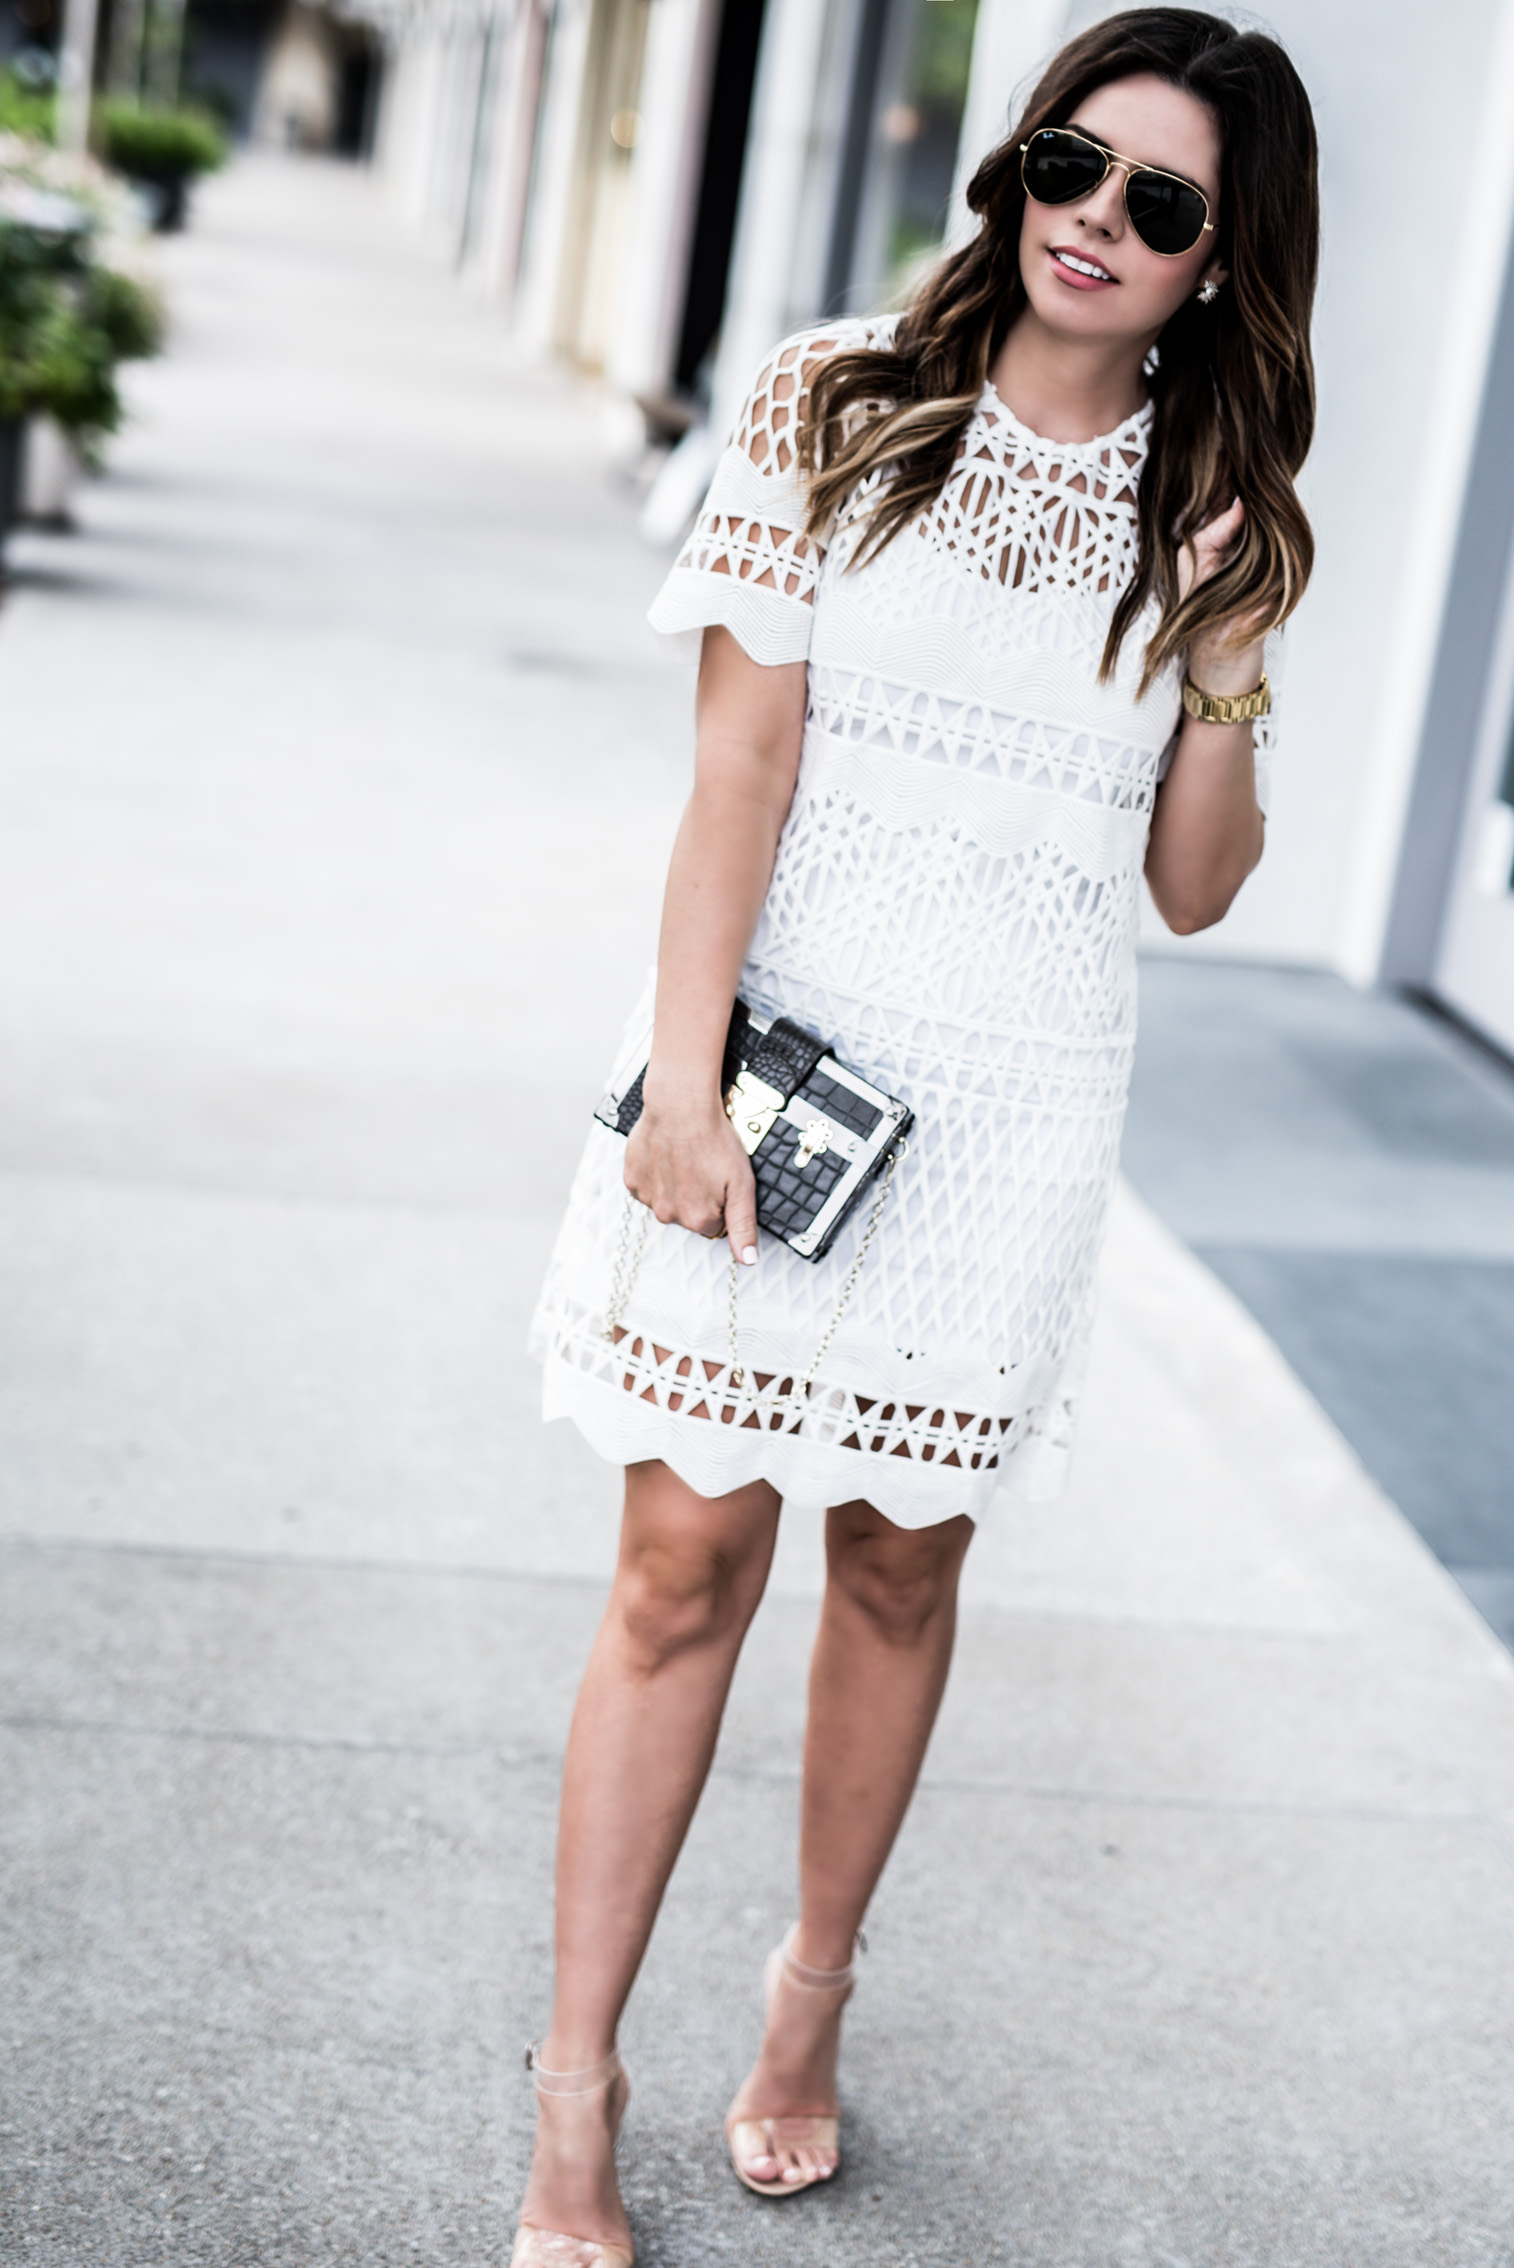 Tiffany Jais Houston fashion and lifestyle blogger | Spring styles with Lord & Taylor, white crotchet lace dress